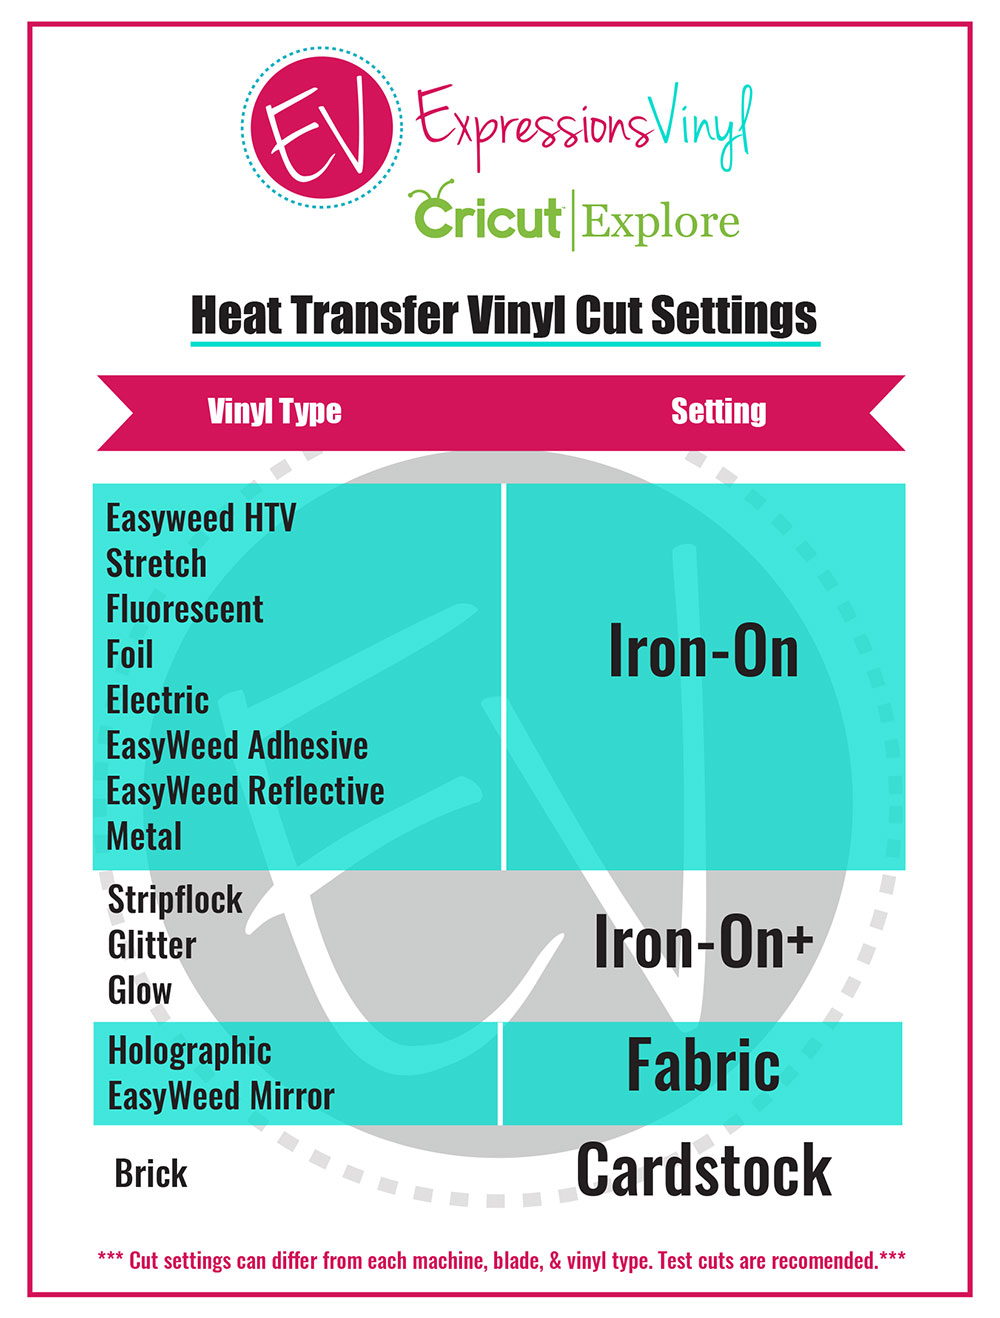 Cricut Explore Heat Transfer Vinyl Cut Settings Chart